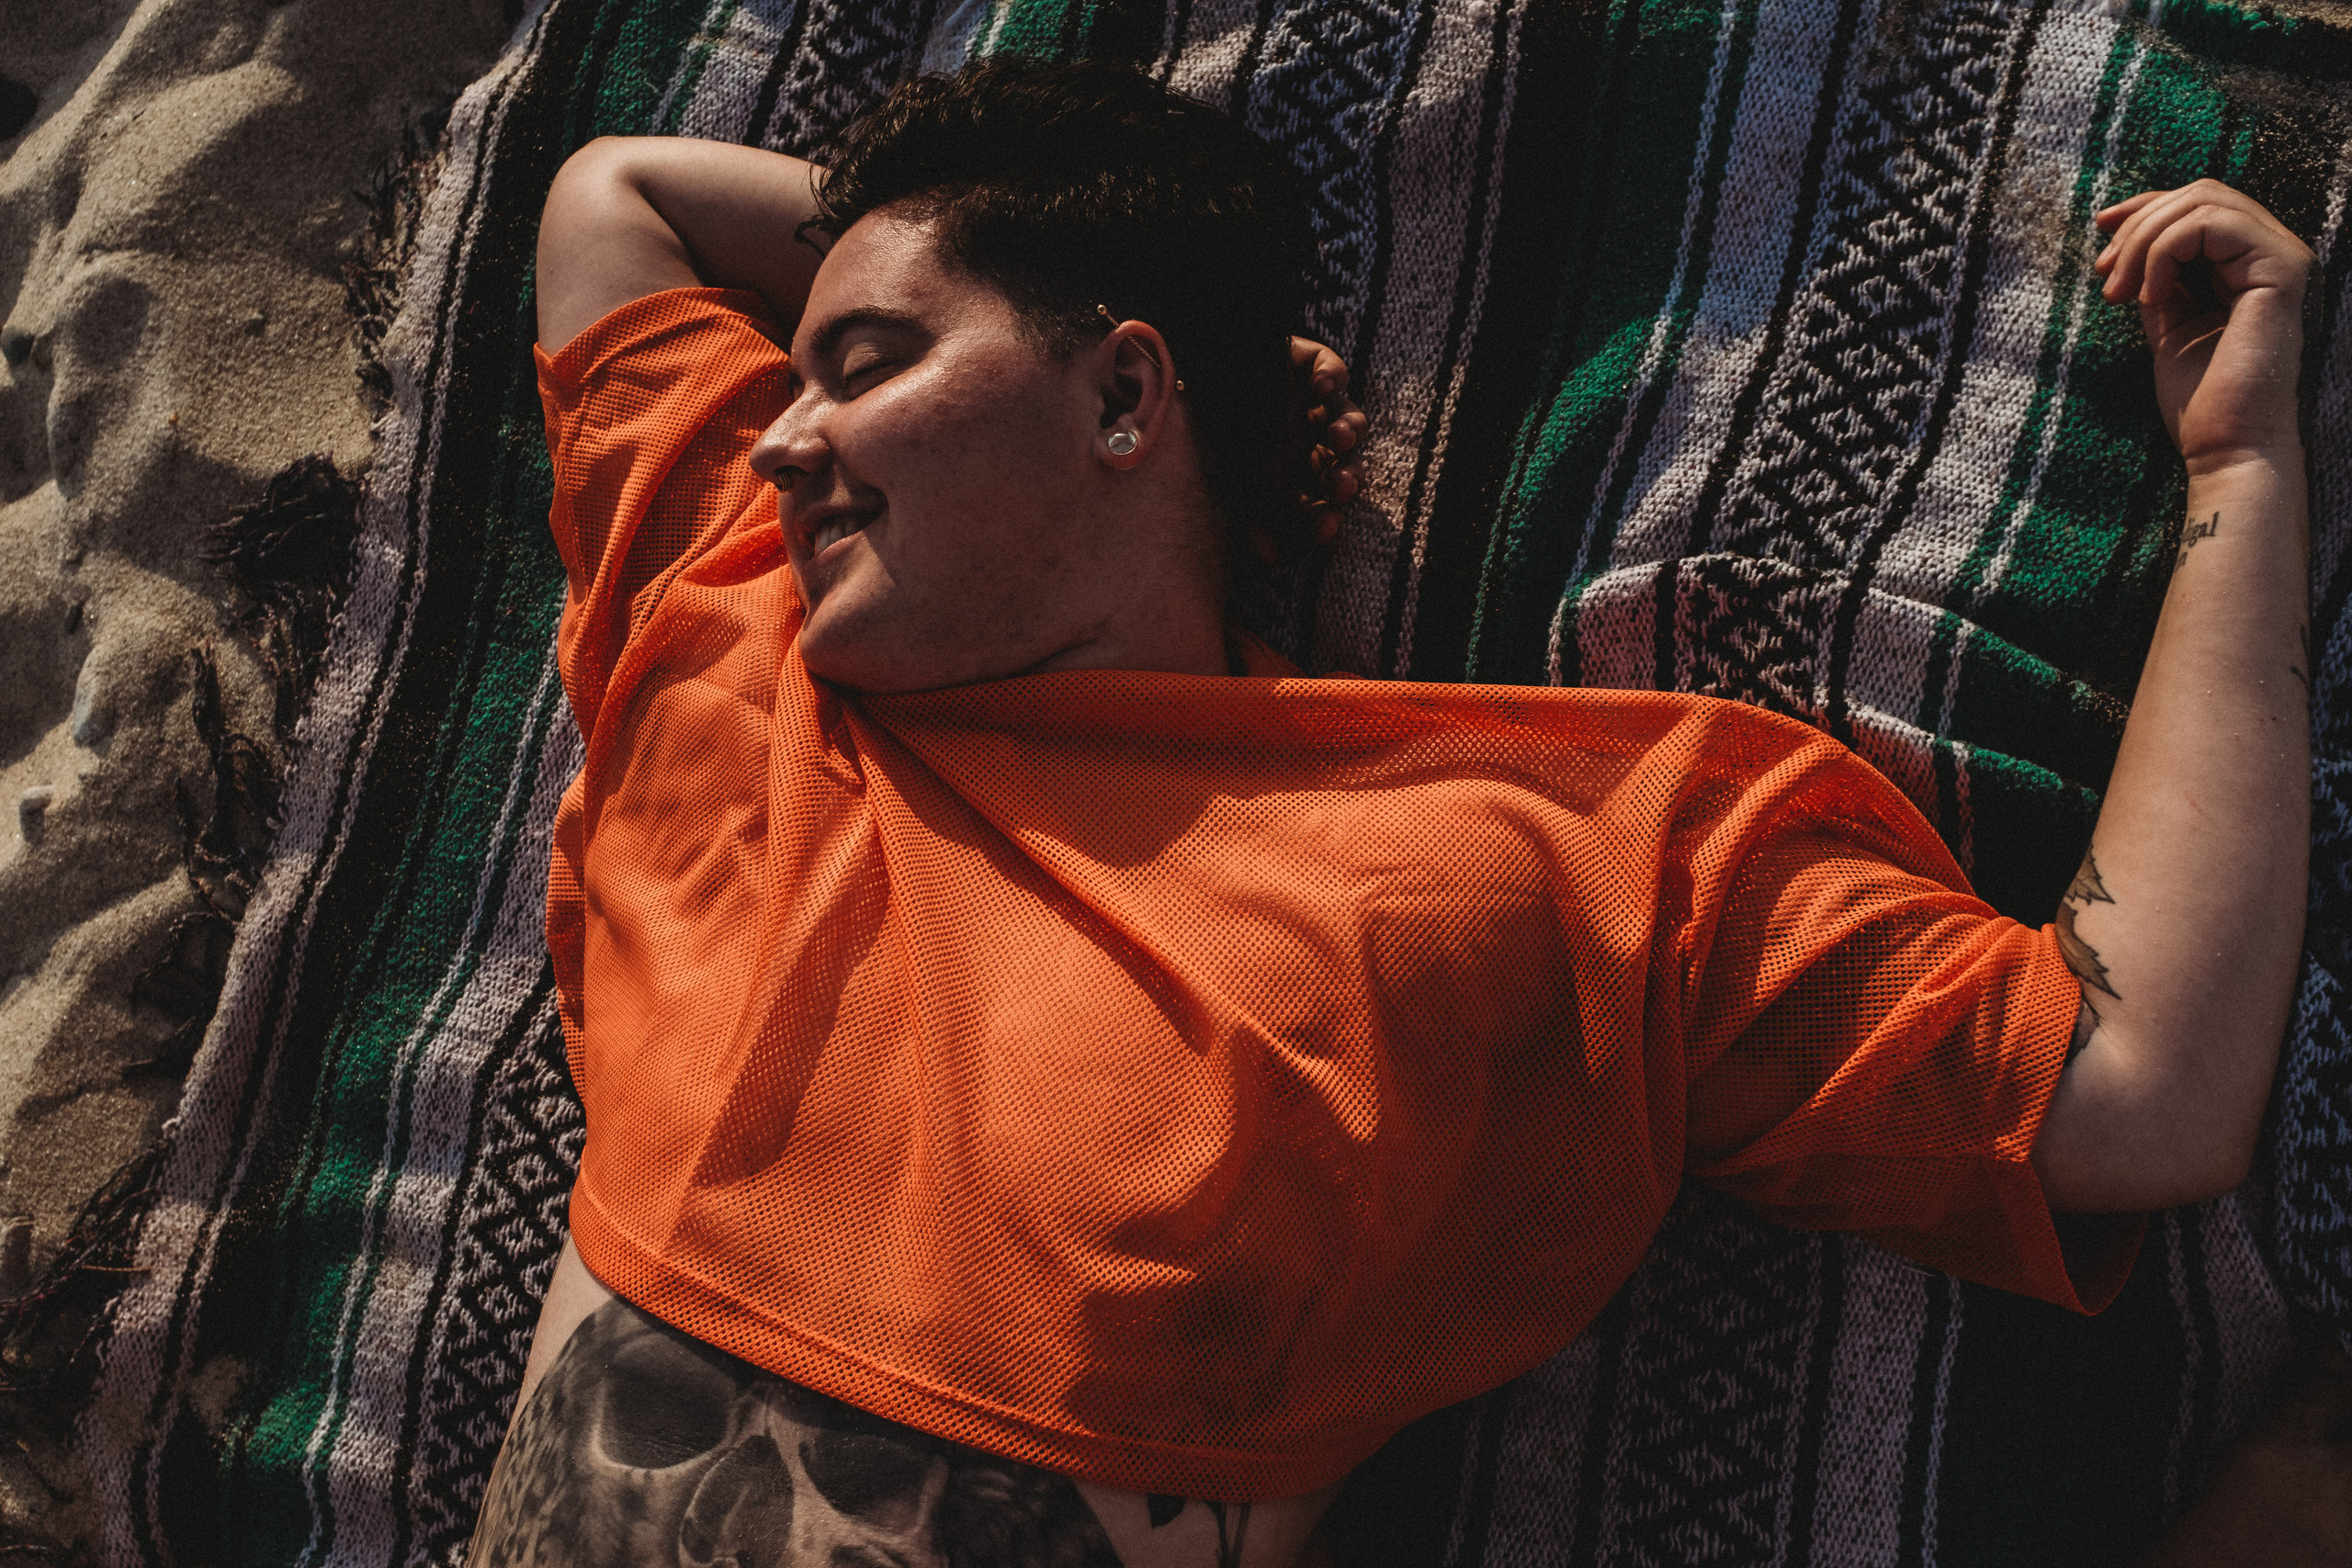 Sage laying down on the beach in a neon orange mesh crop top